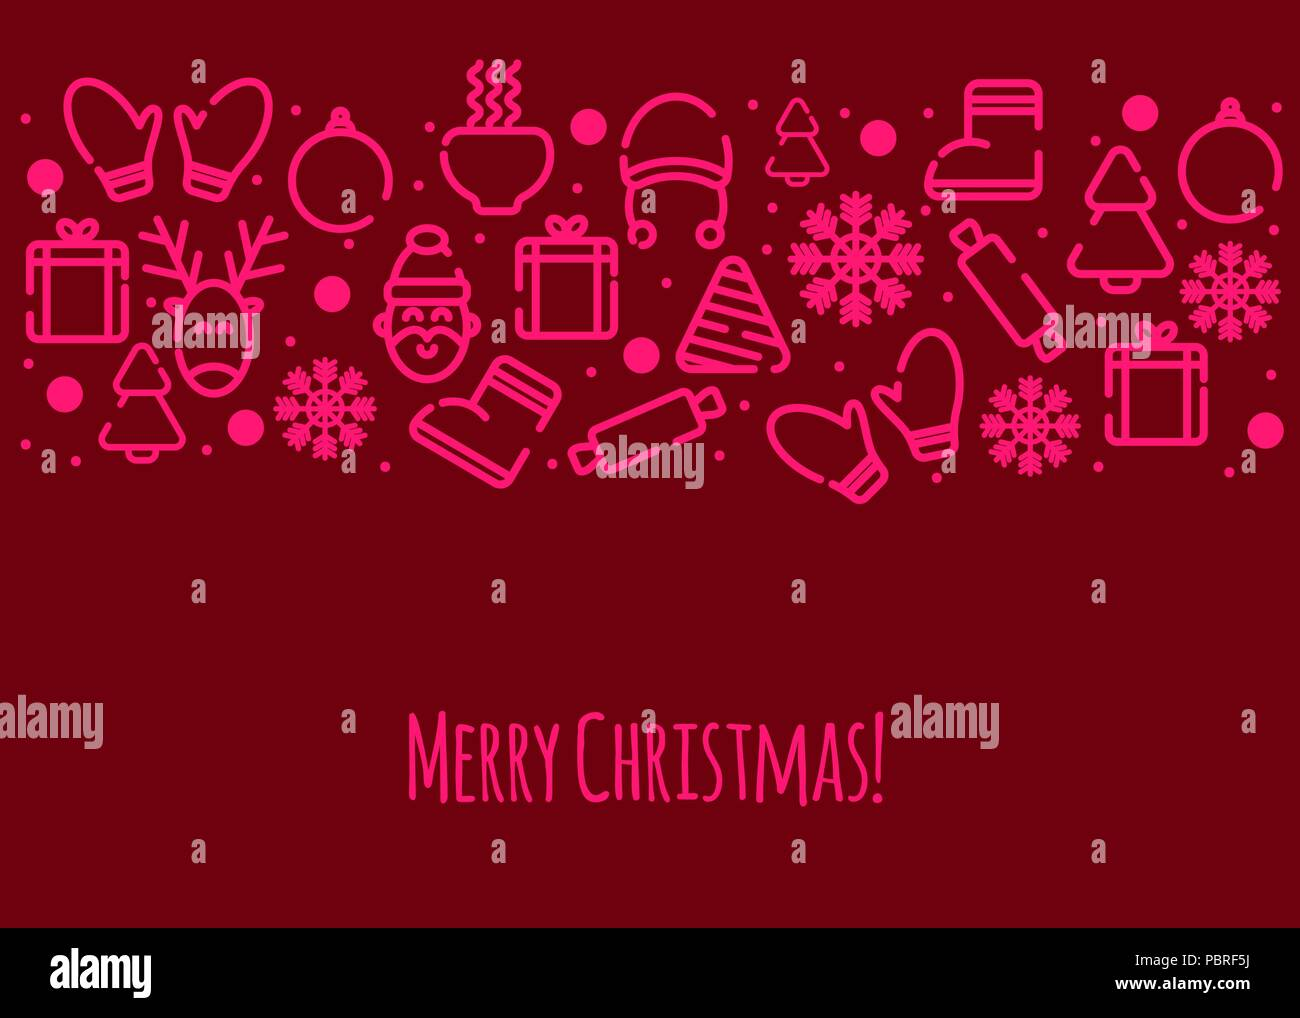 Christmas Card Merry Christmas Greetings Banner With Winter Icons